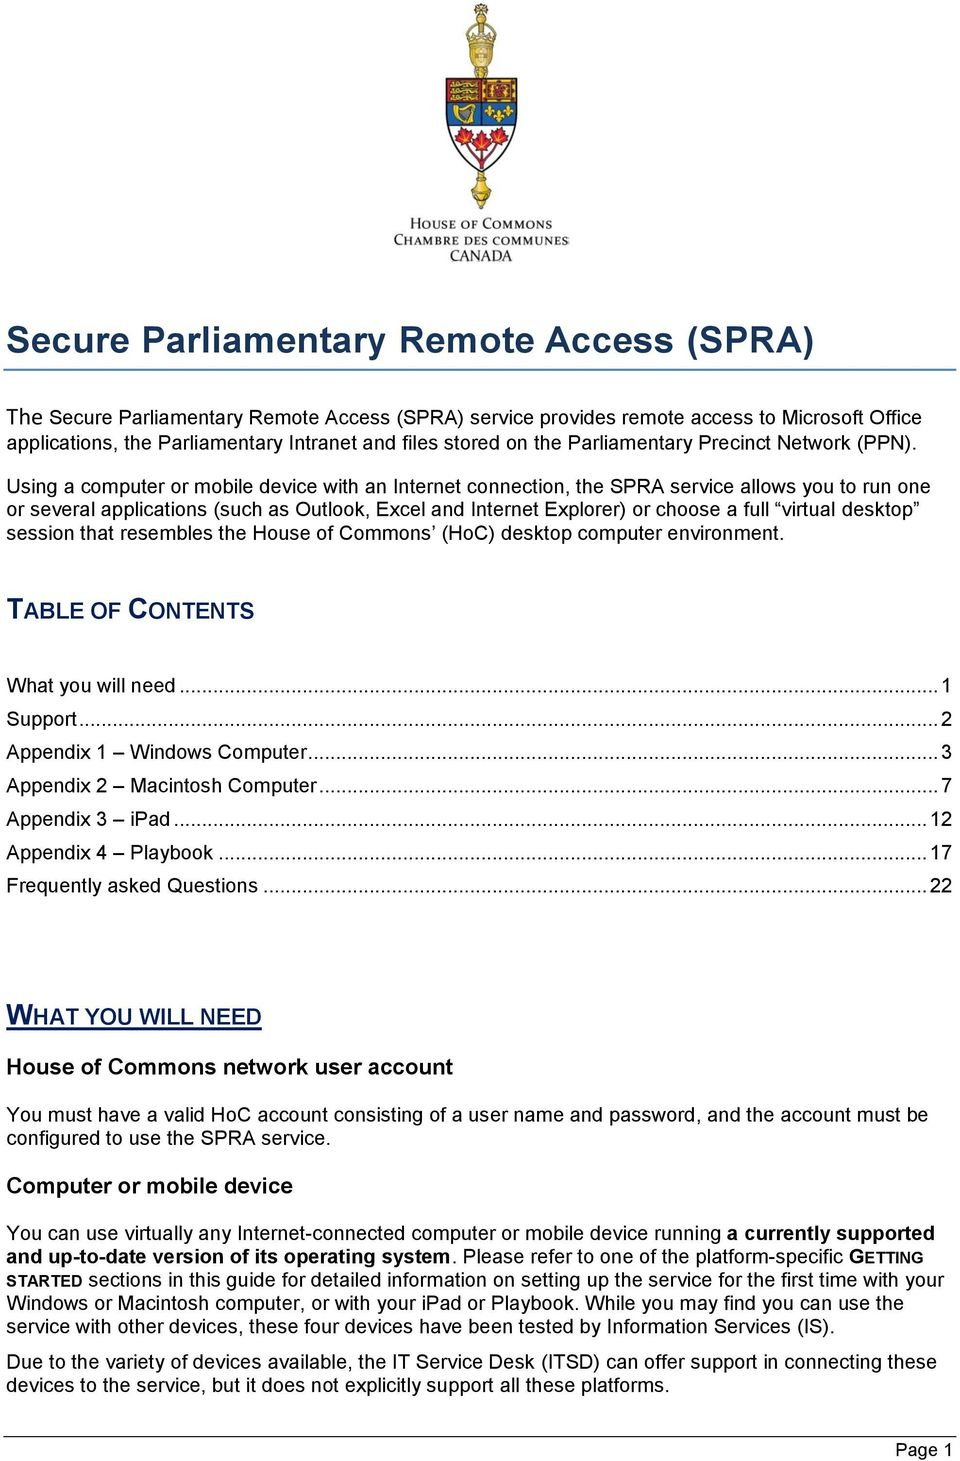 Using a computer or mobile device with an Internet connection, the SPRA service allows you to run one or several applications (such as Outlook, Excel and Internet Explorer) or choose a full virtual